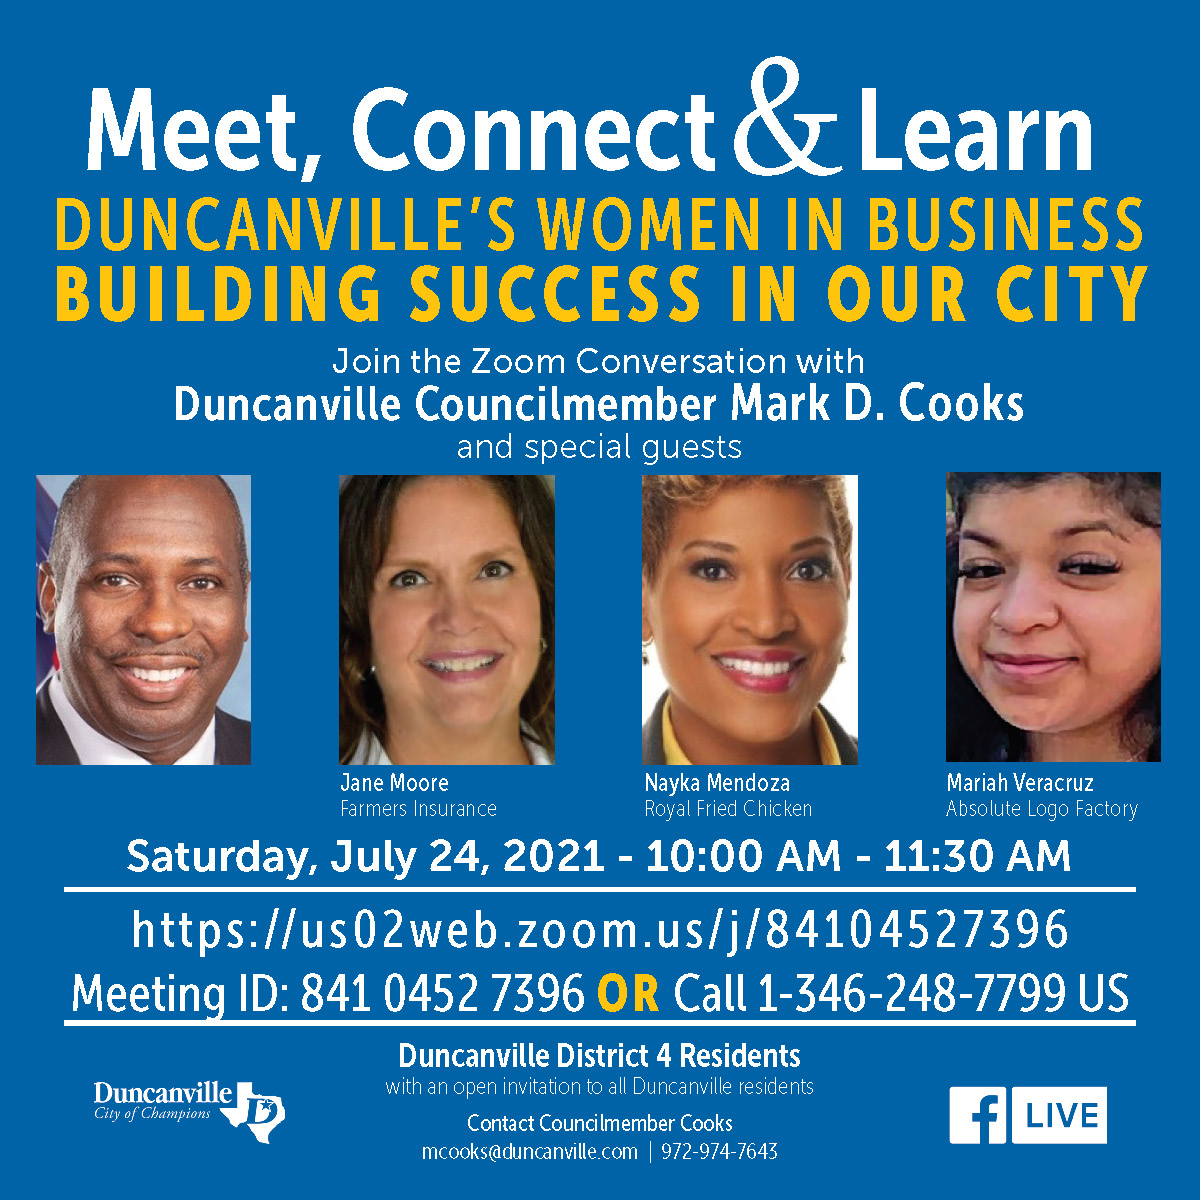 Meet, Connect & Learn